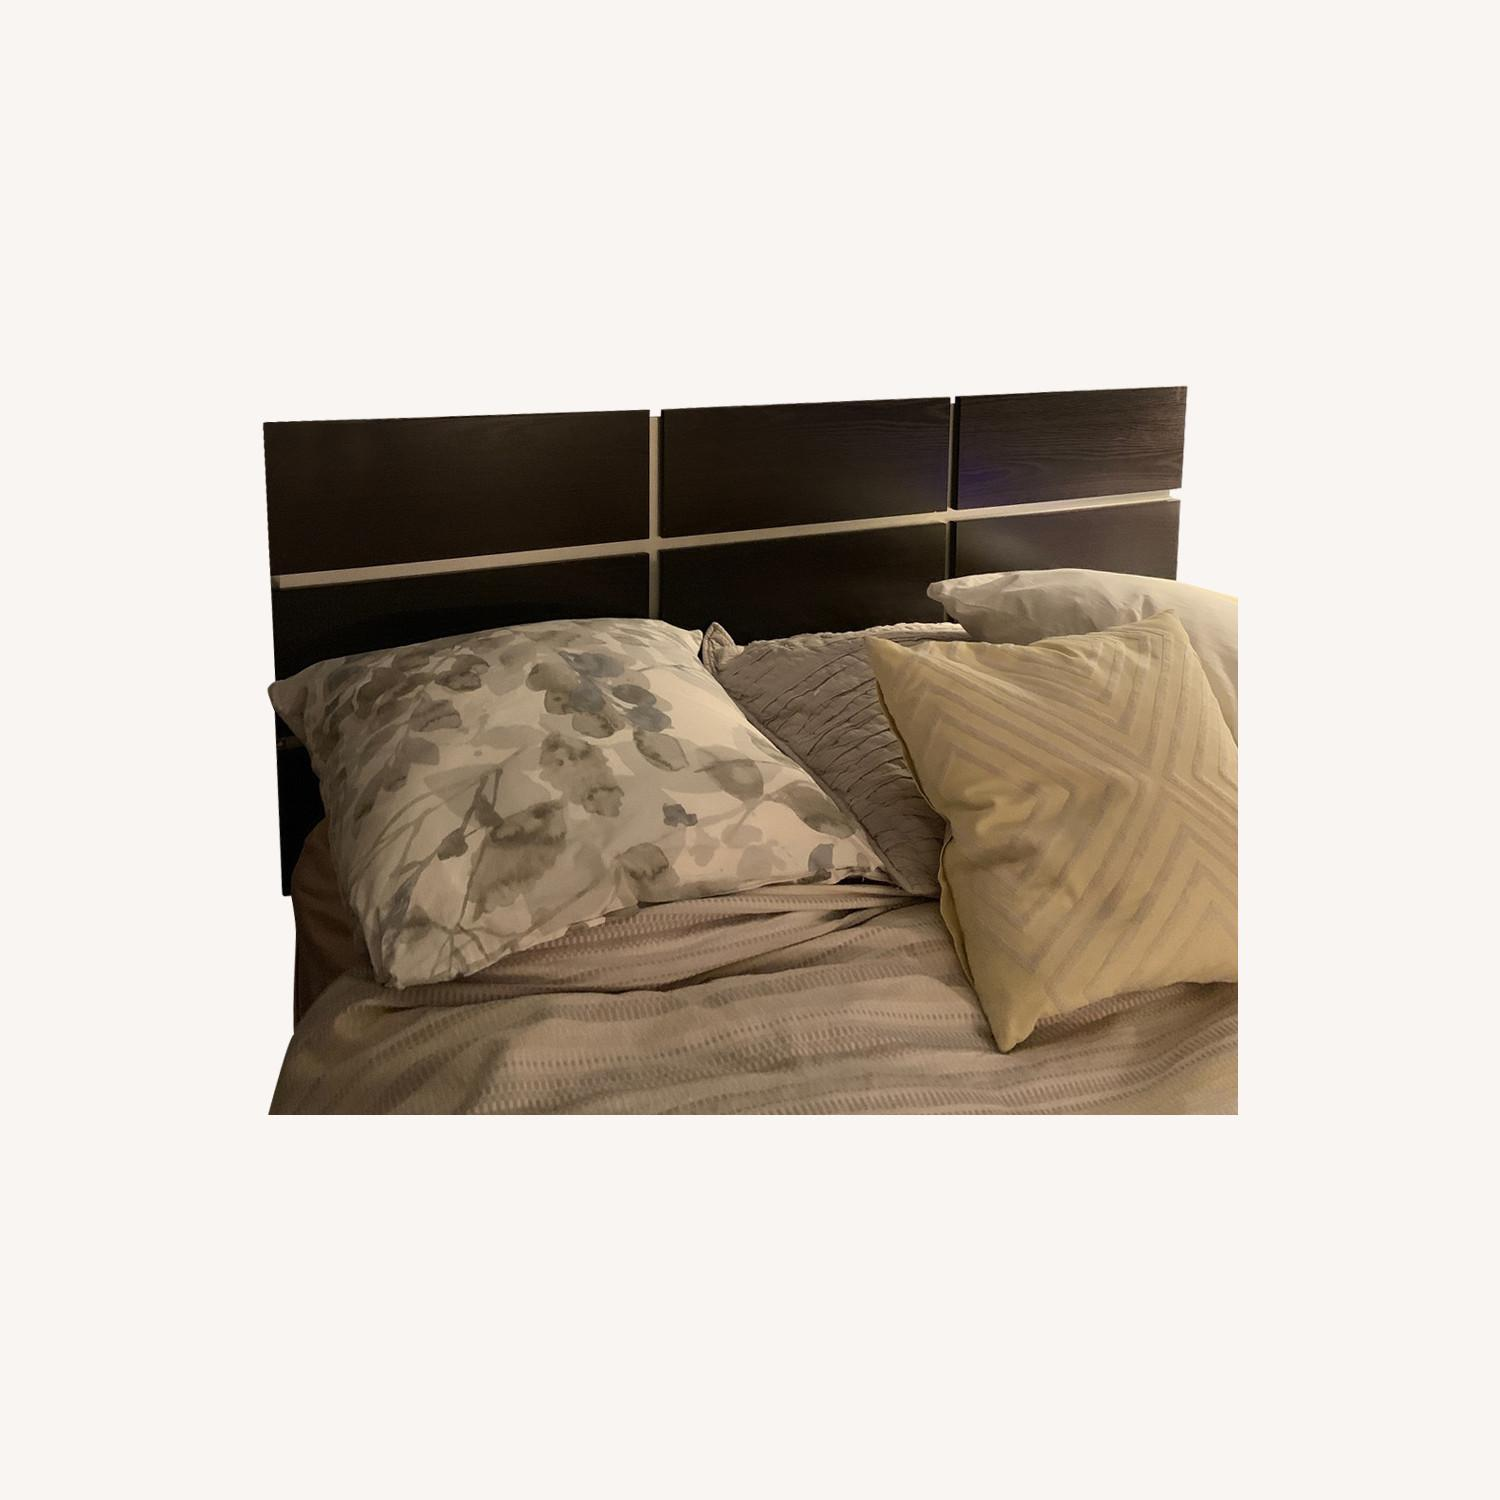 Streamlined wood headboard and queen frame - image-0